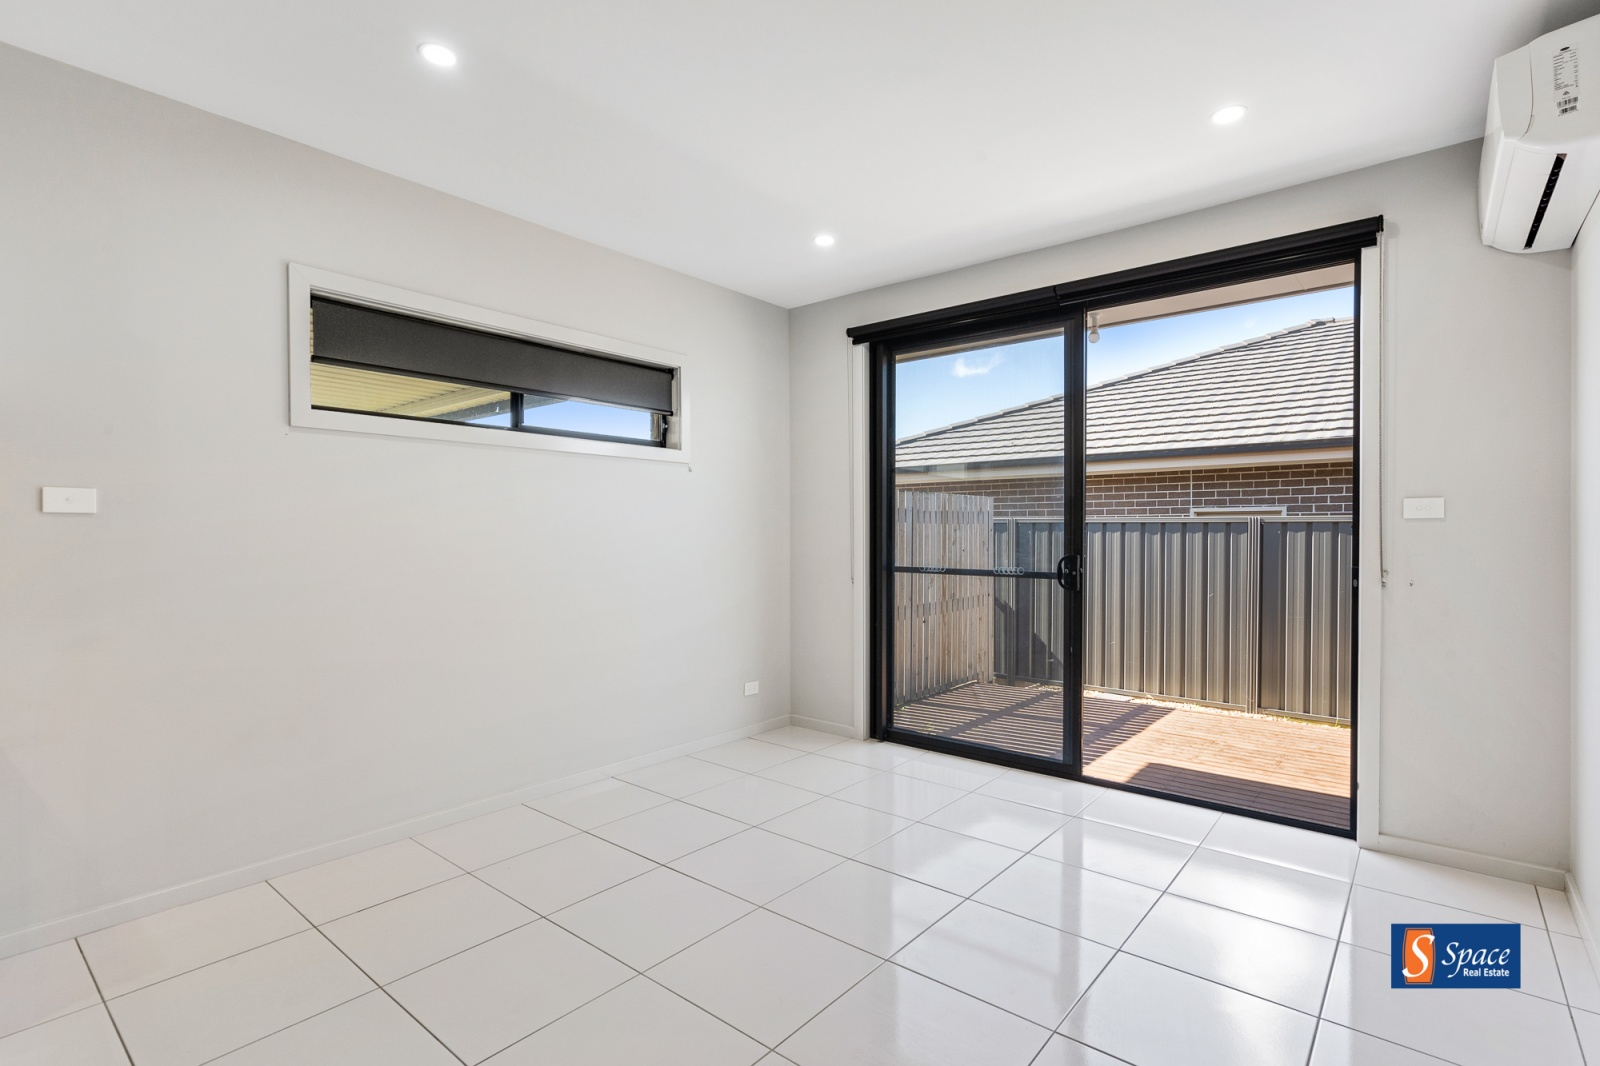 29a Skaife Street,Oran Park,NSW,2 Bedrooms Bedrooms,1 BathroomBathrooms,House,Skaife Street,1358